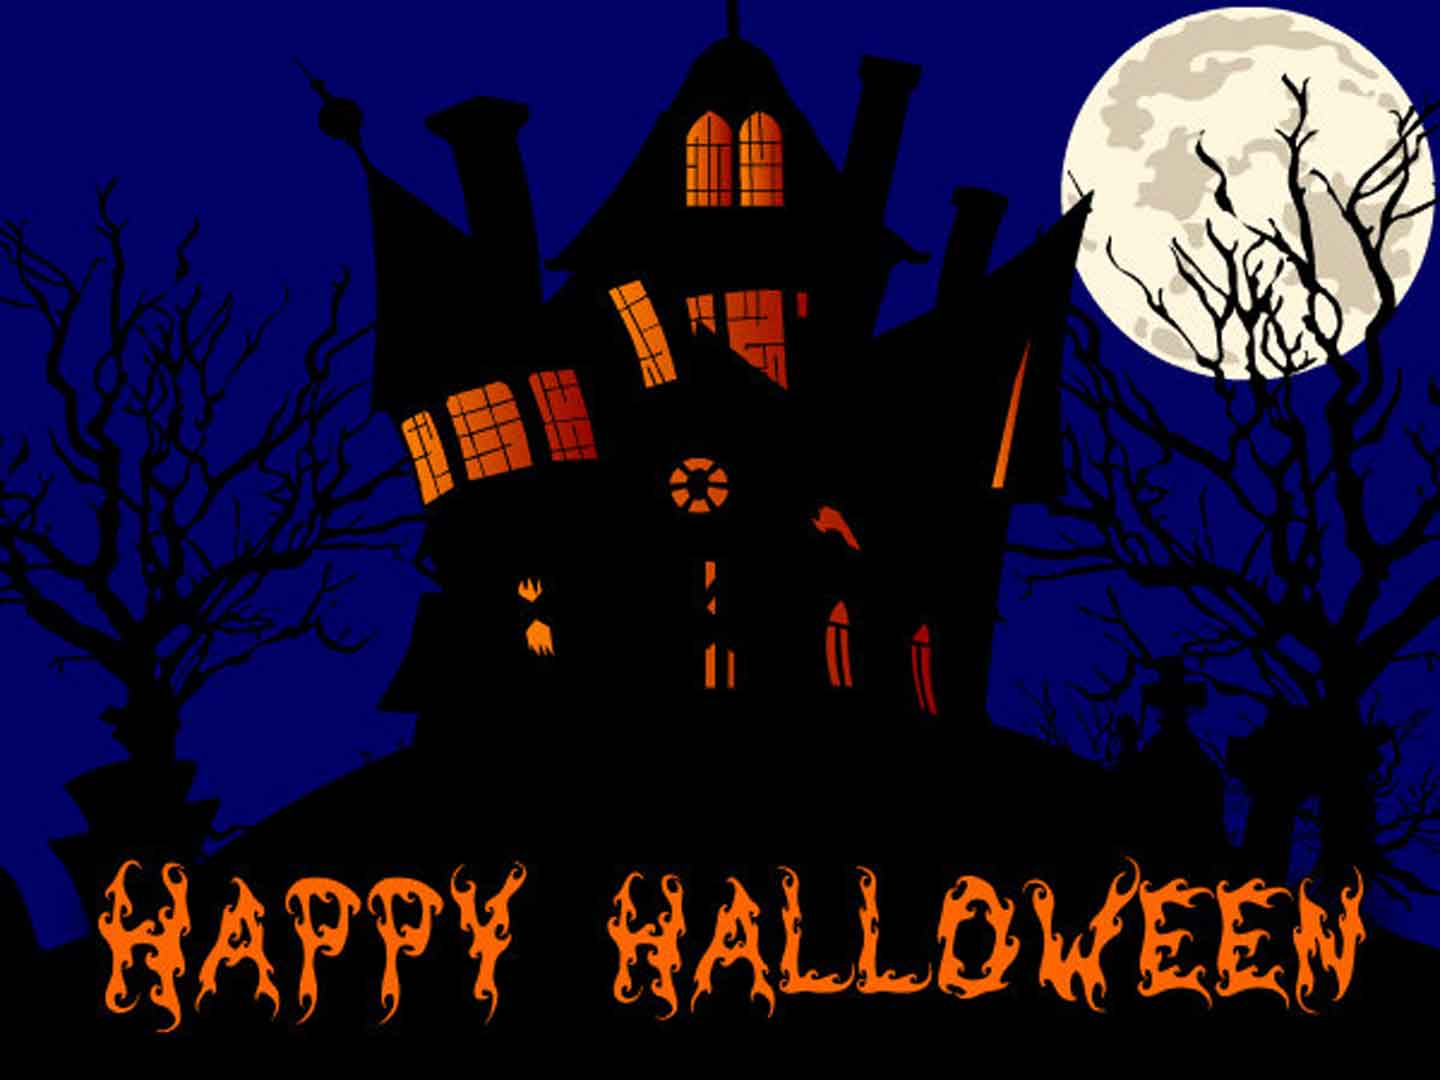 Happy-Halloween-scary-house-image